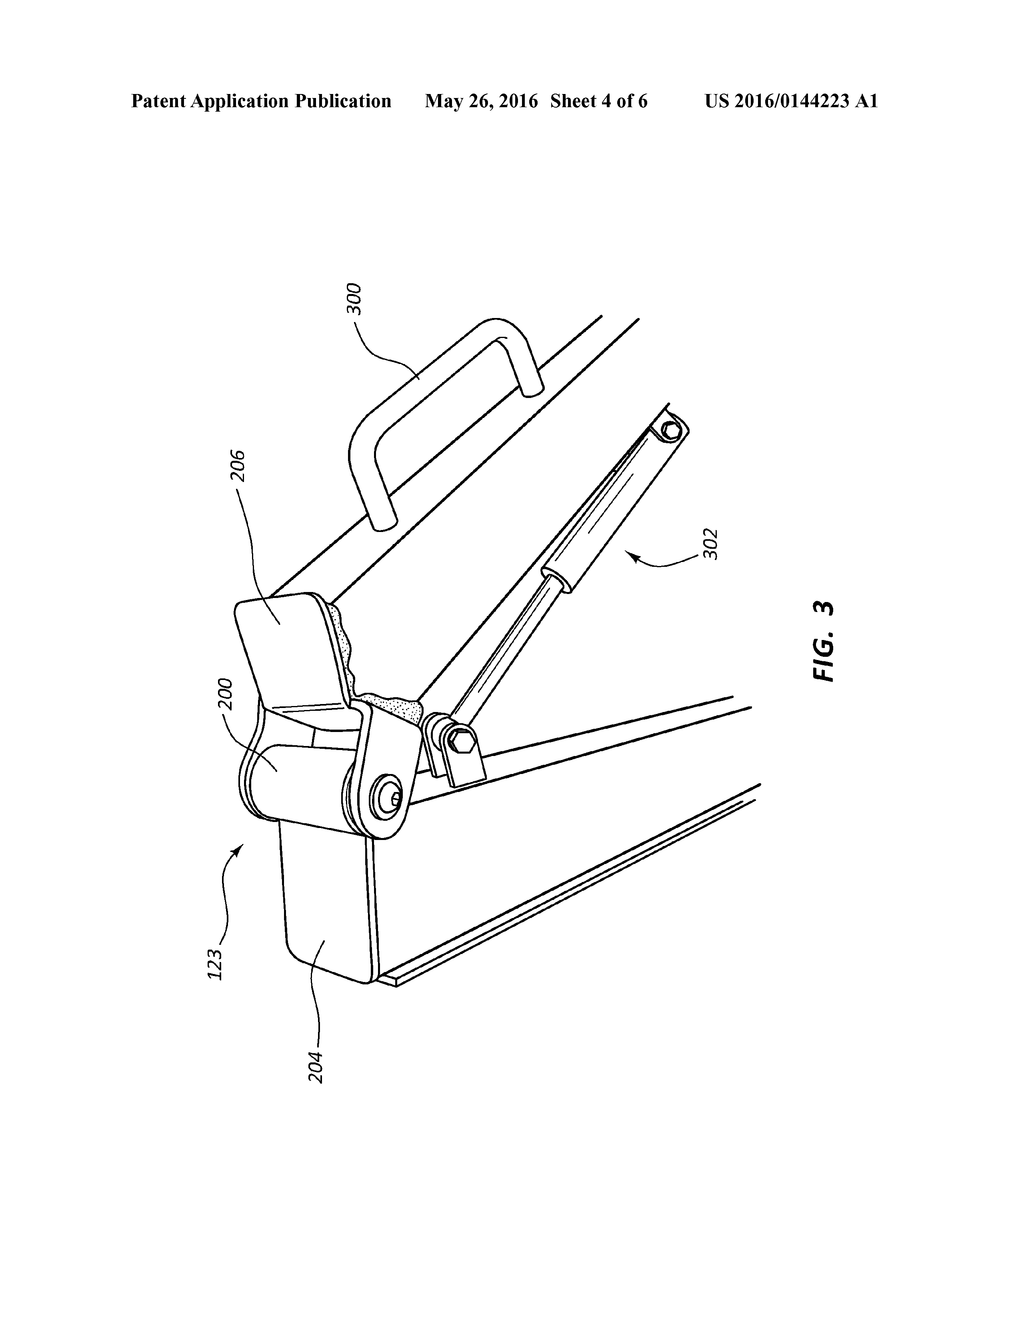 hight resolution of rowing machine having a beam with a hinge joint diagram schematic and image 05